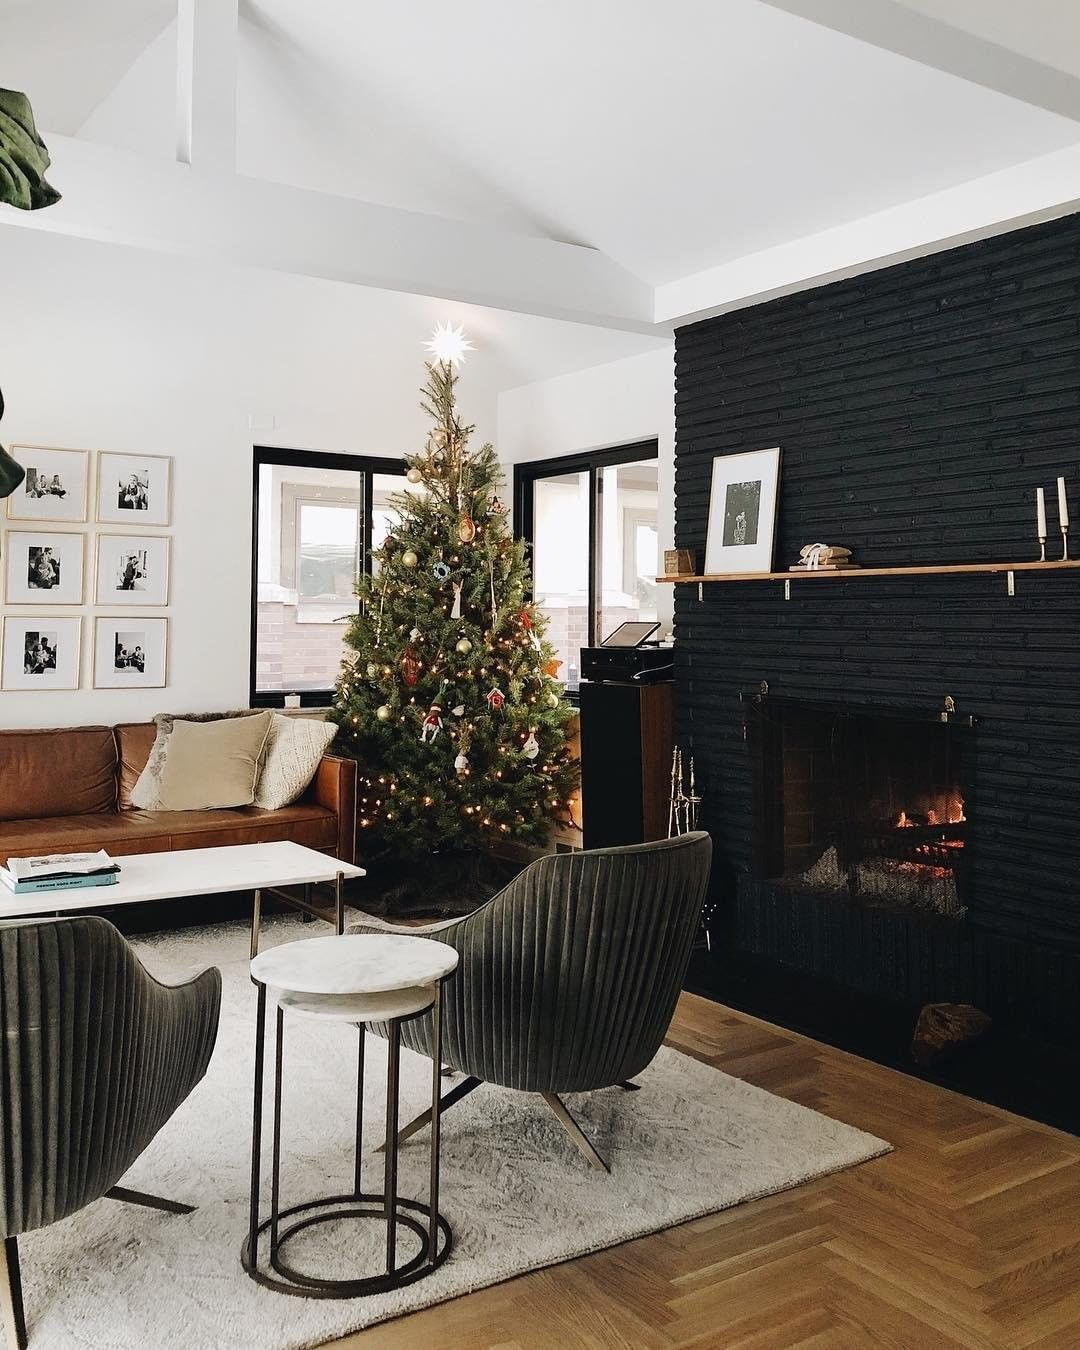 West Elm Christmas 2018.West Elm On Instagram Hoping Your Holiday Is The Coziest